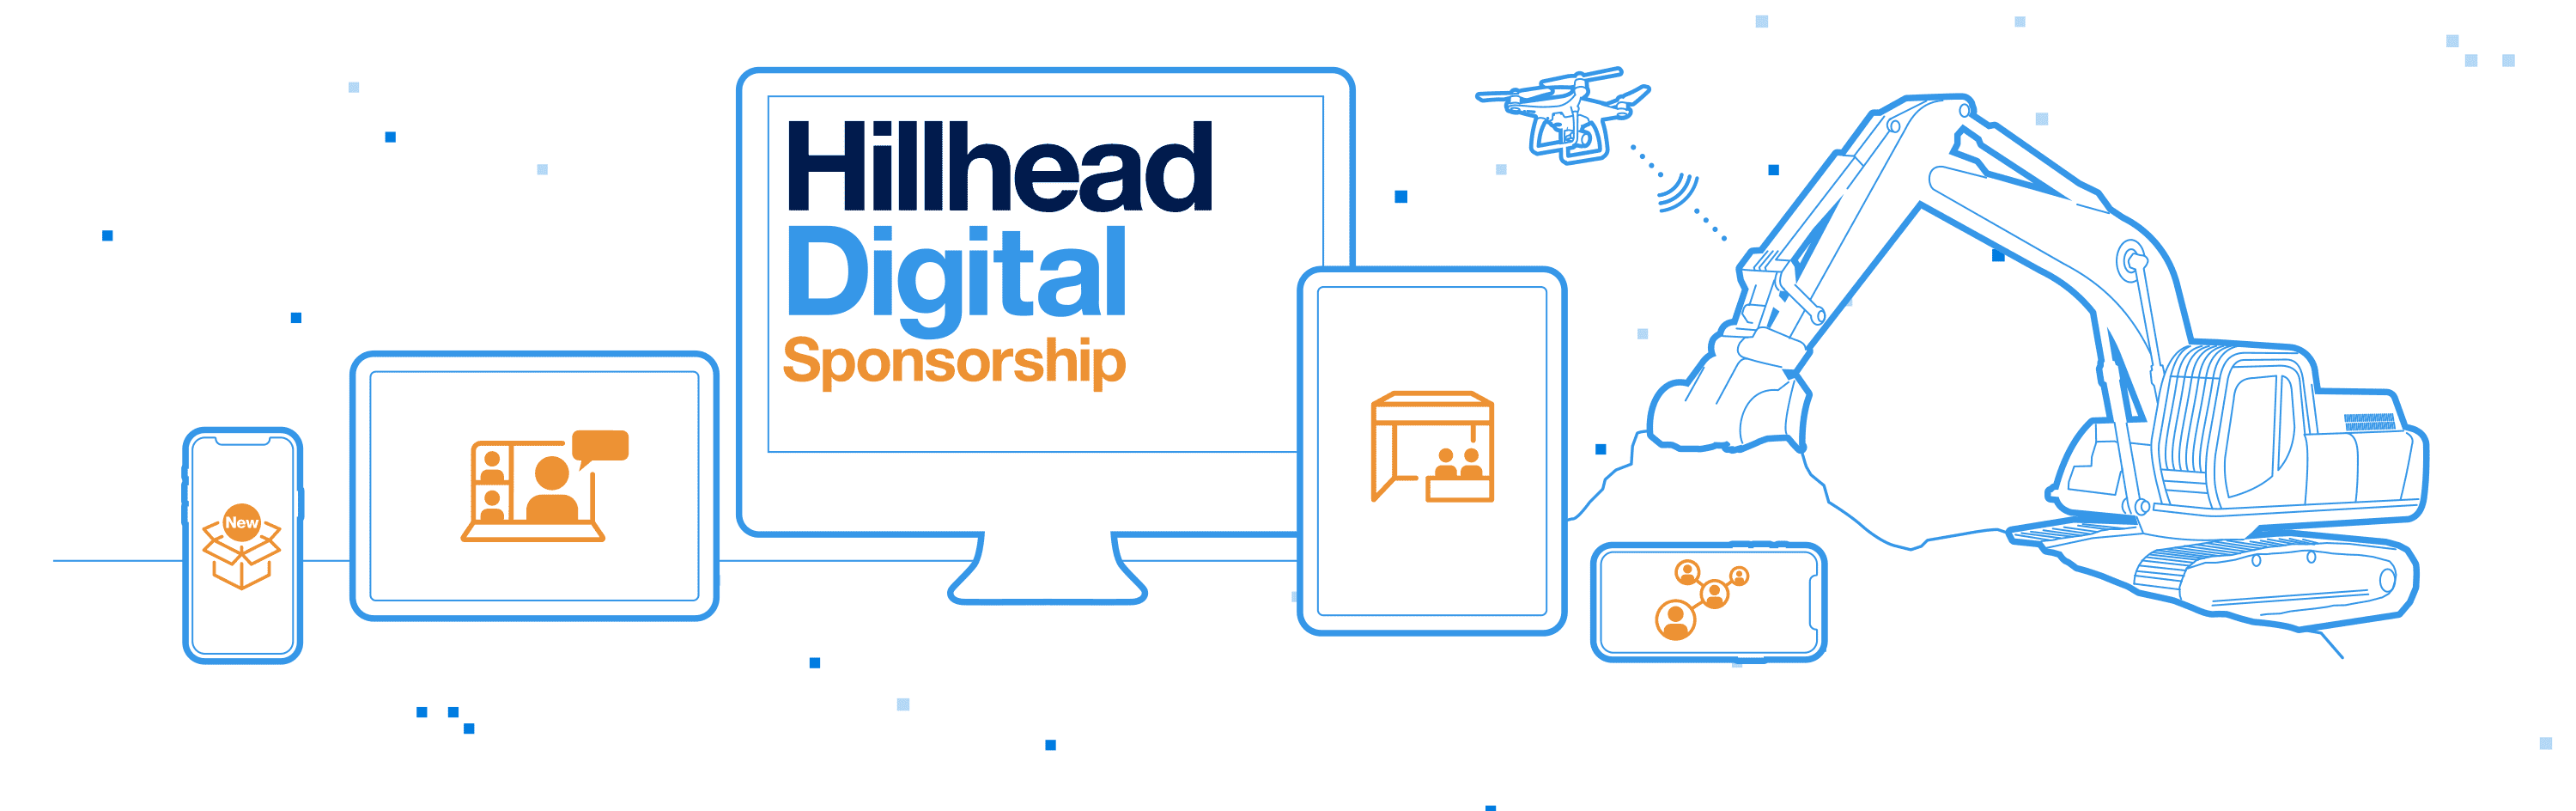 Hillhead Digital Sponsorship opportunities